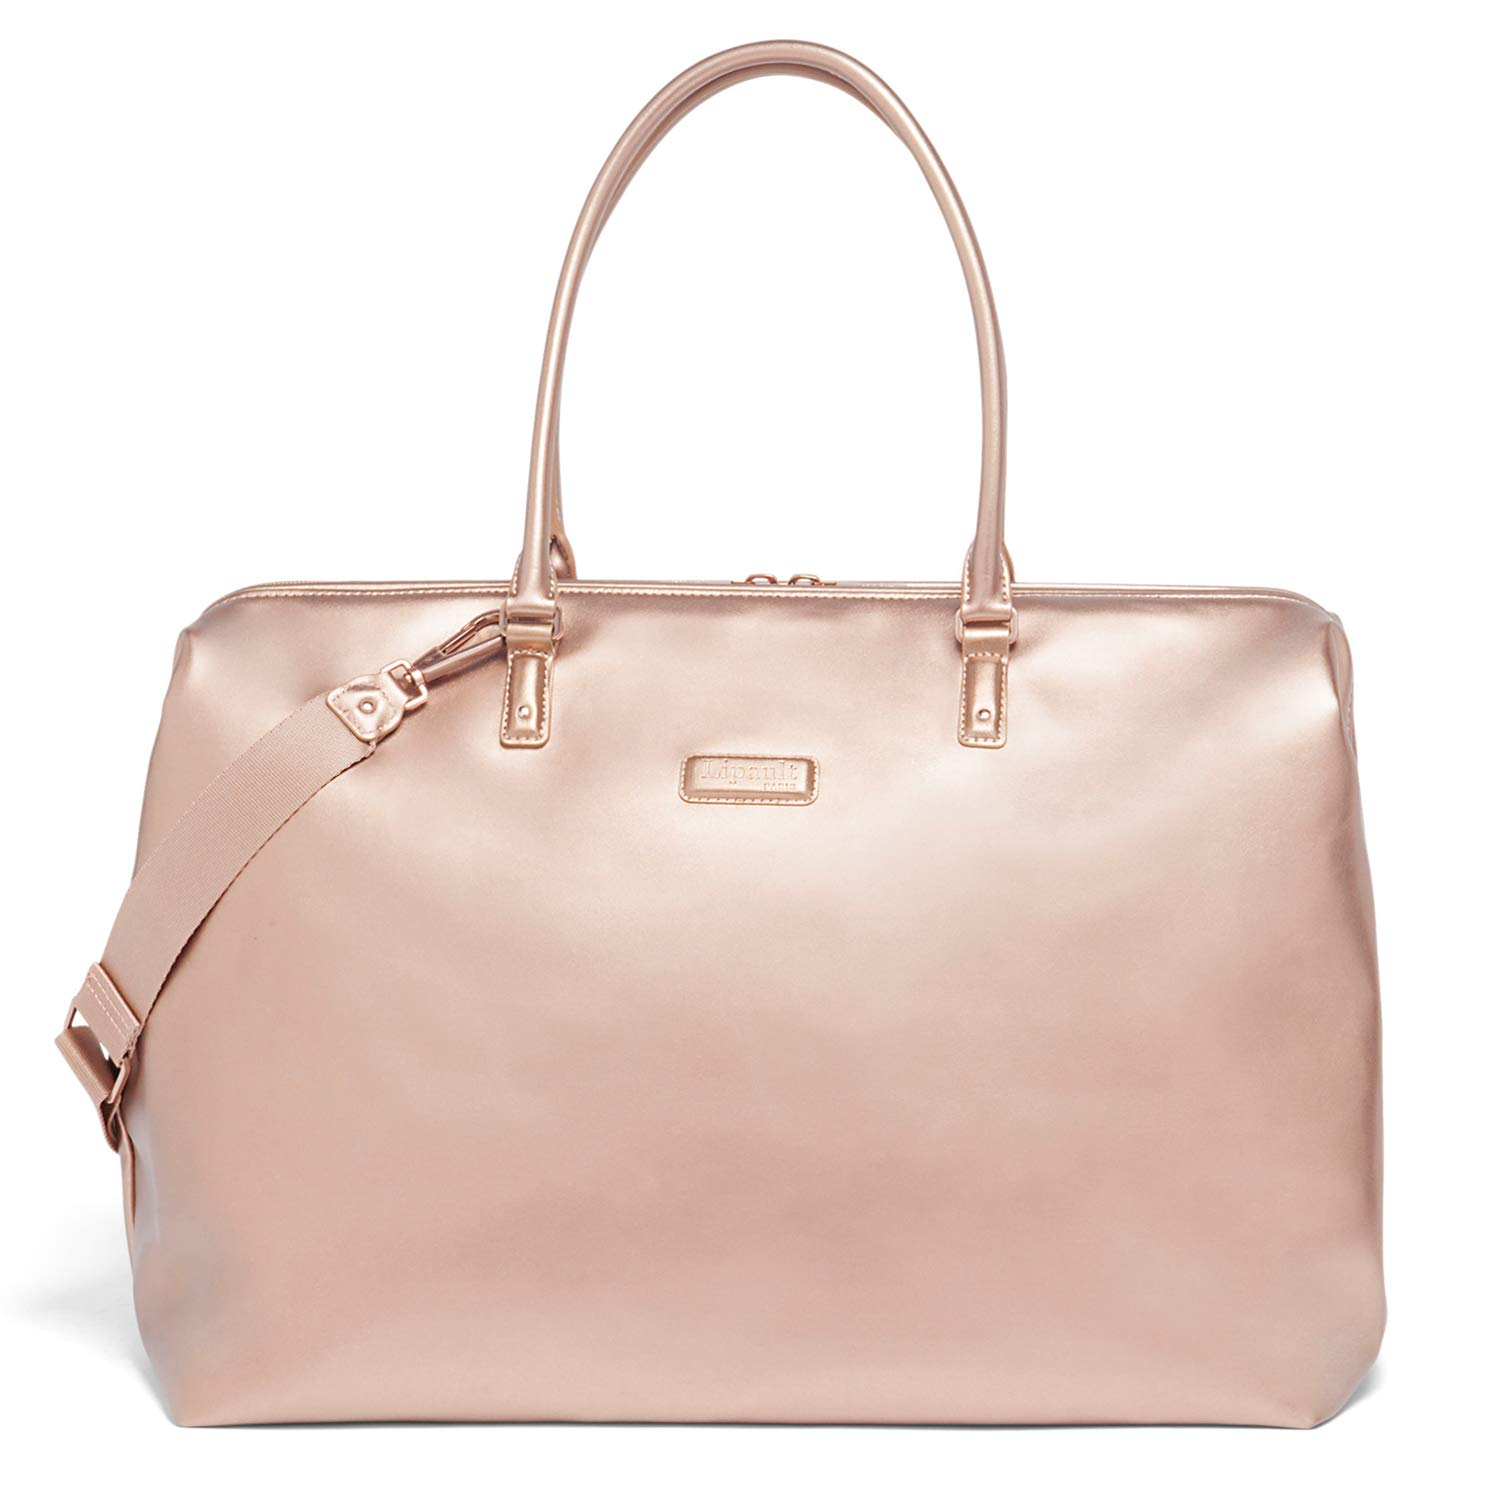 Lipault - Miss Plume Weekend Bag - Medium Top Handle Shoulder Overnight Travel Duffel Luggage for Women - Pink Gold